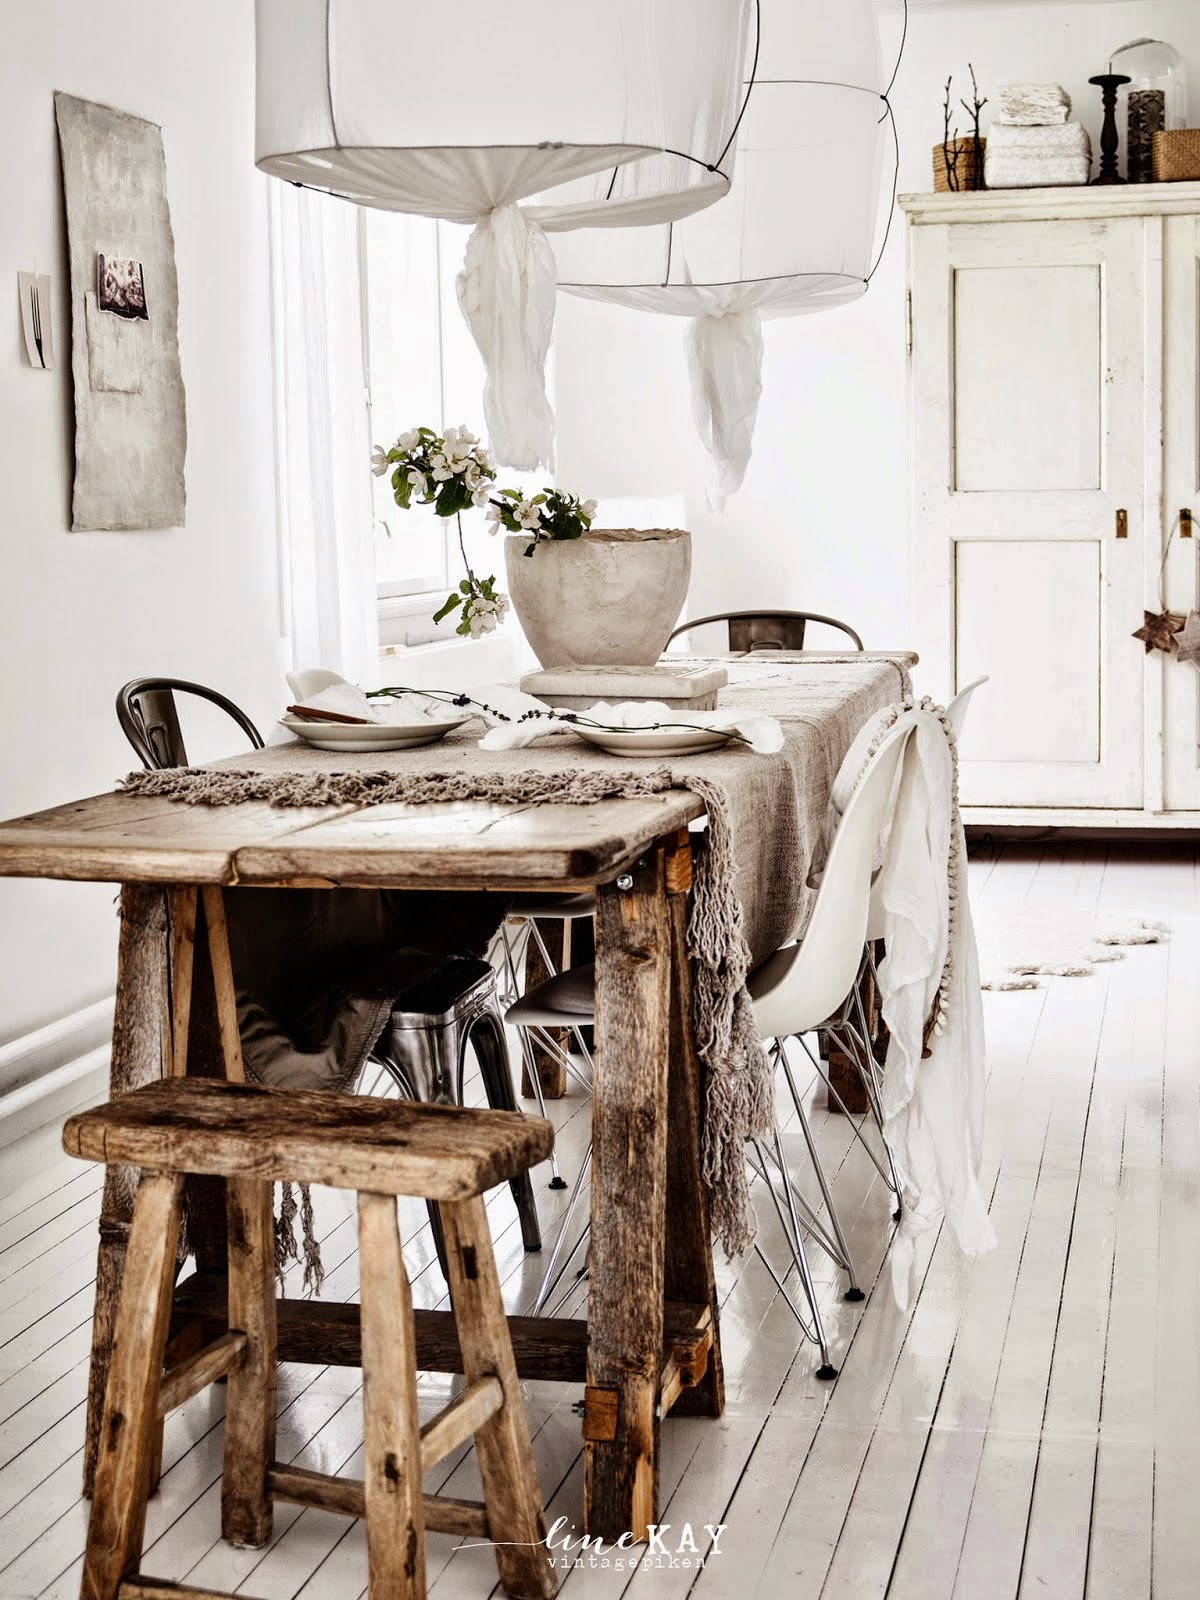 My Scandinavian Home: A Norwegian Space With A Boho